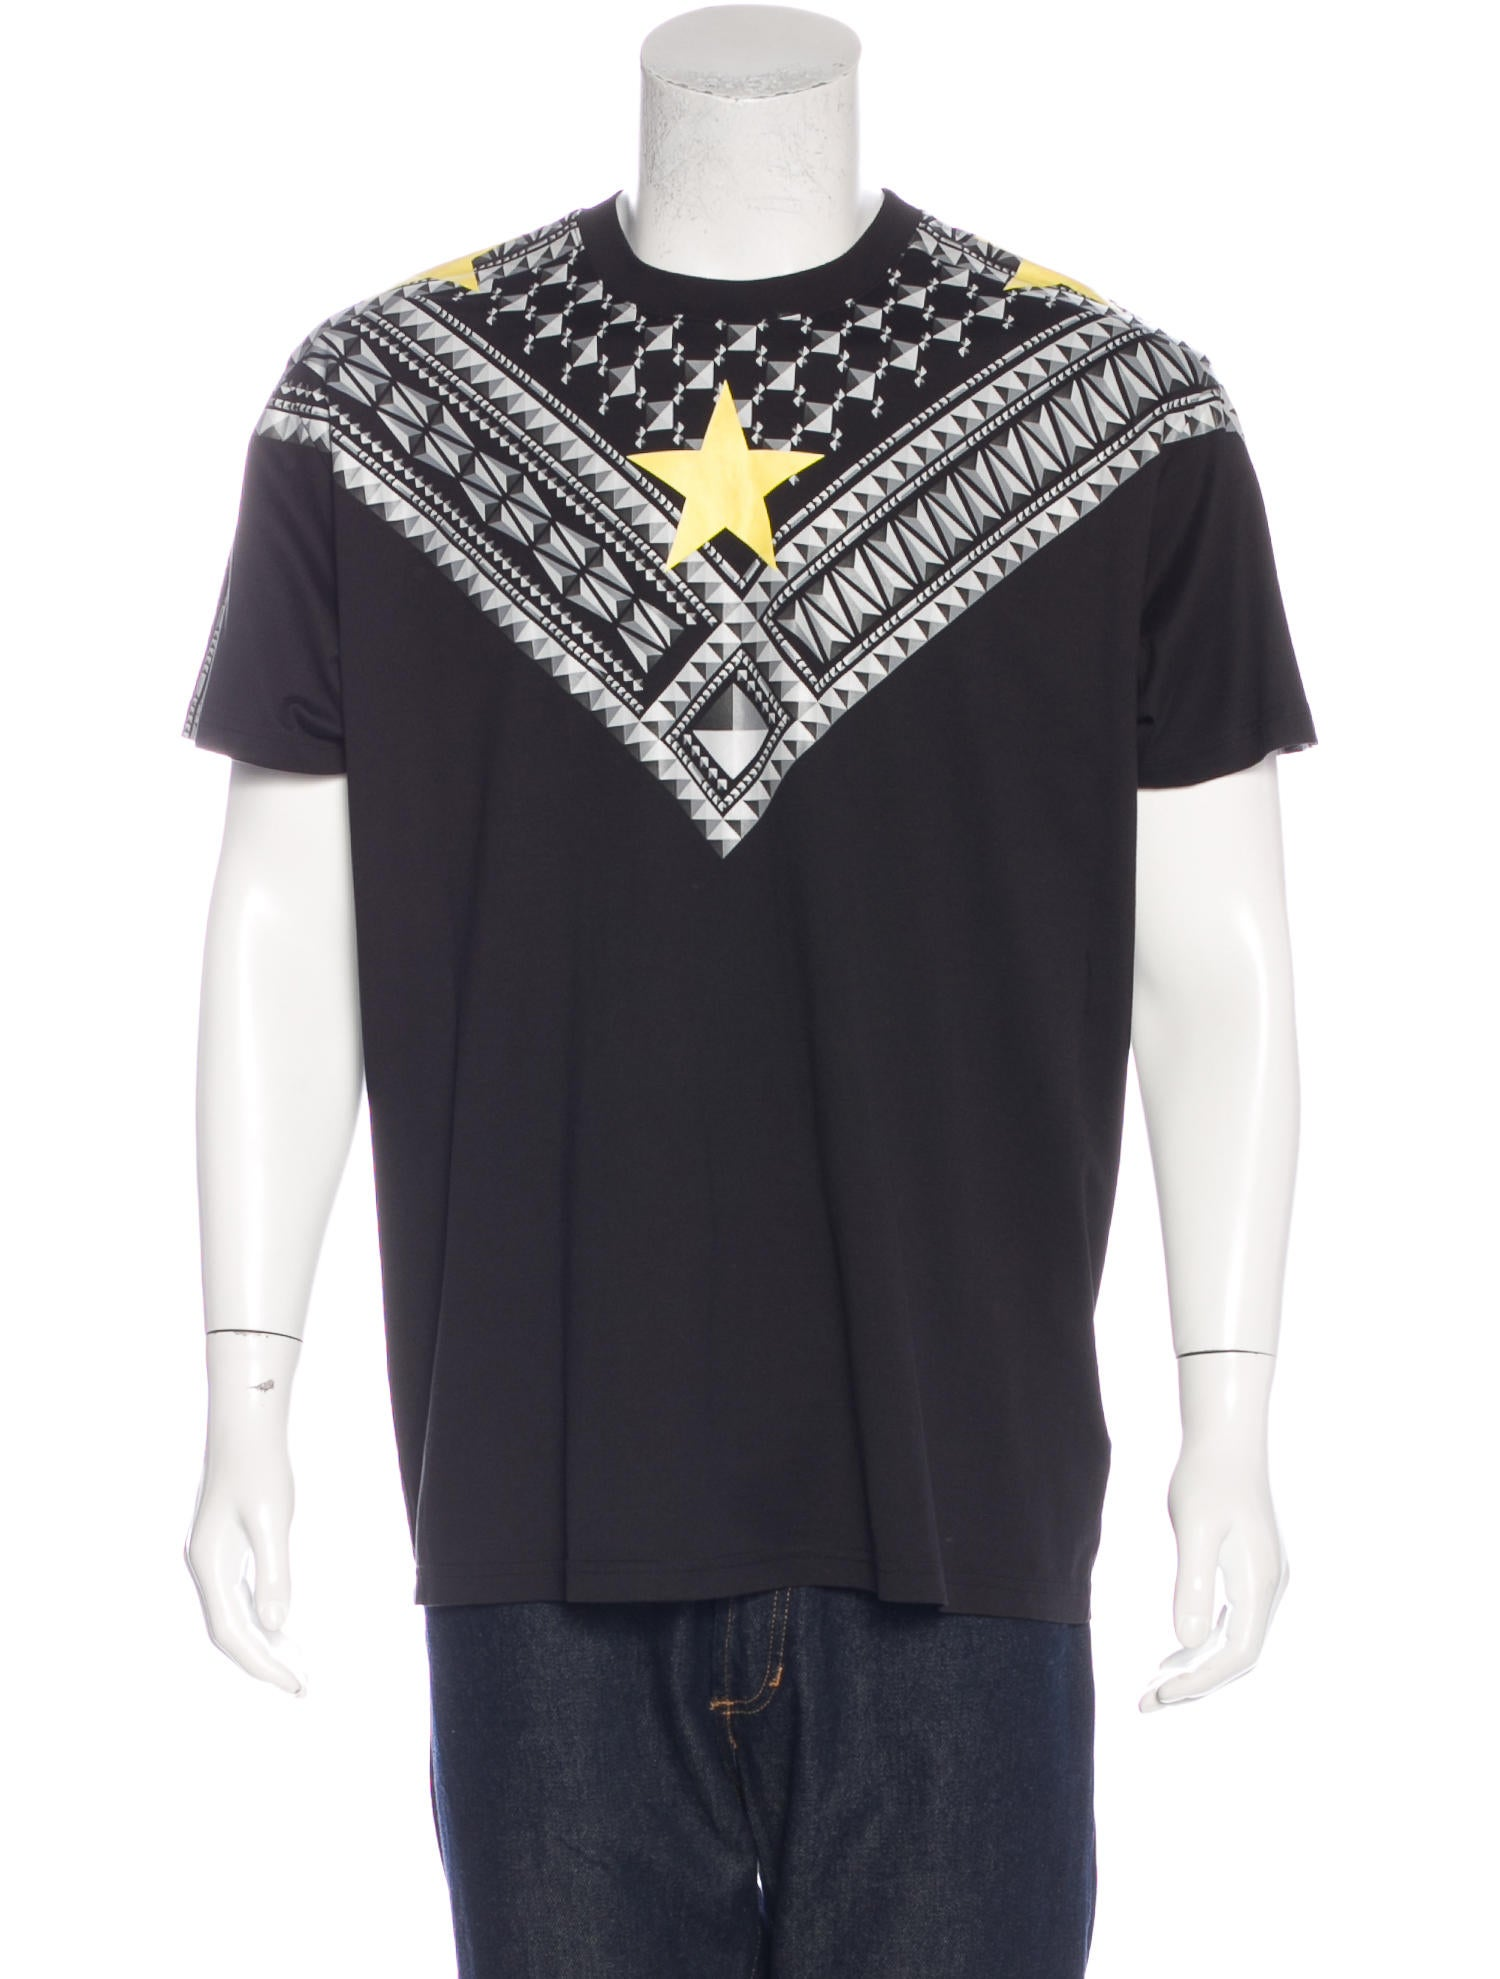 Givenchy star print t shirt w tags clothing giv38436 for Givenchy star t shirt